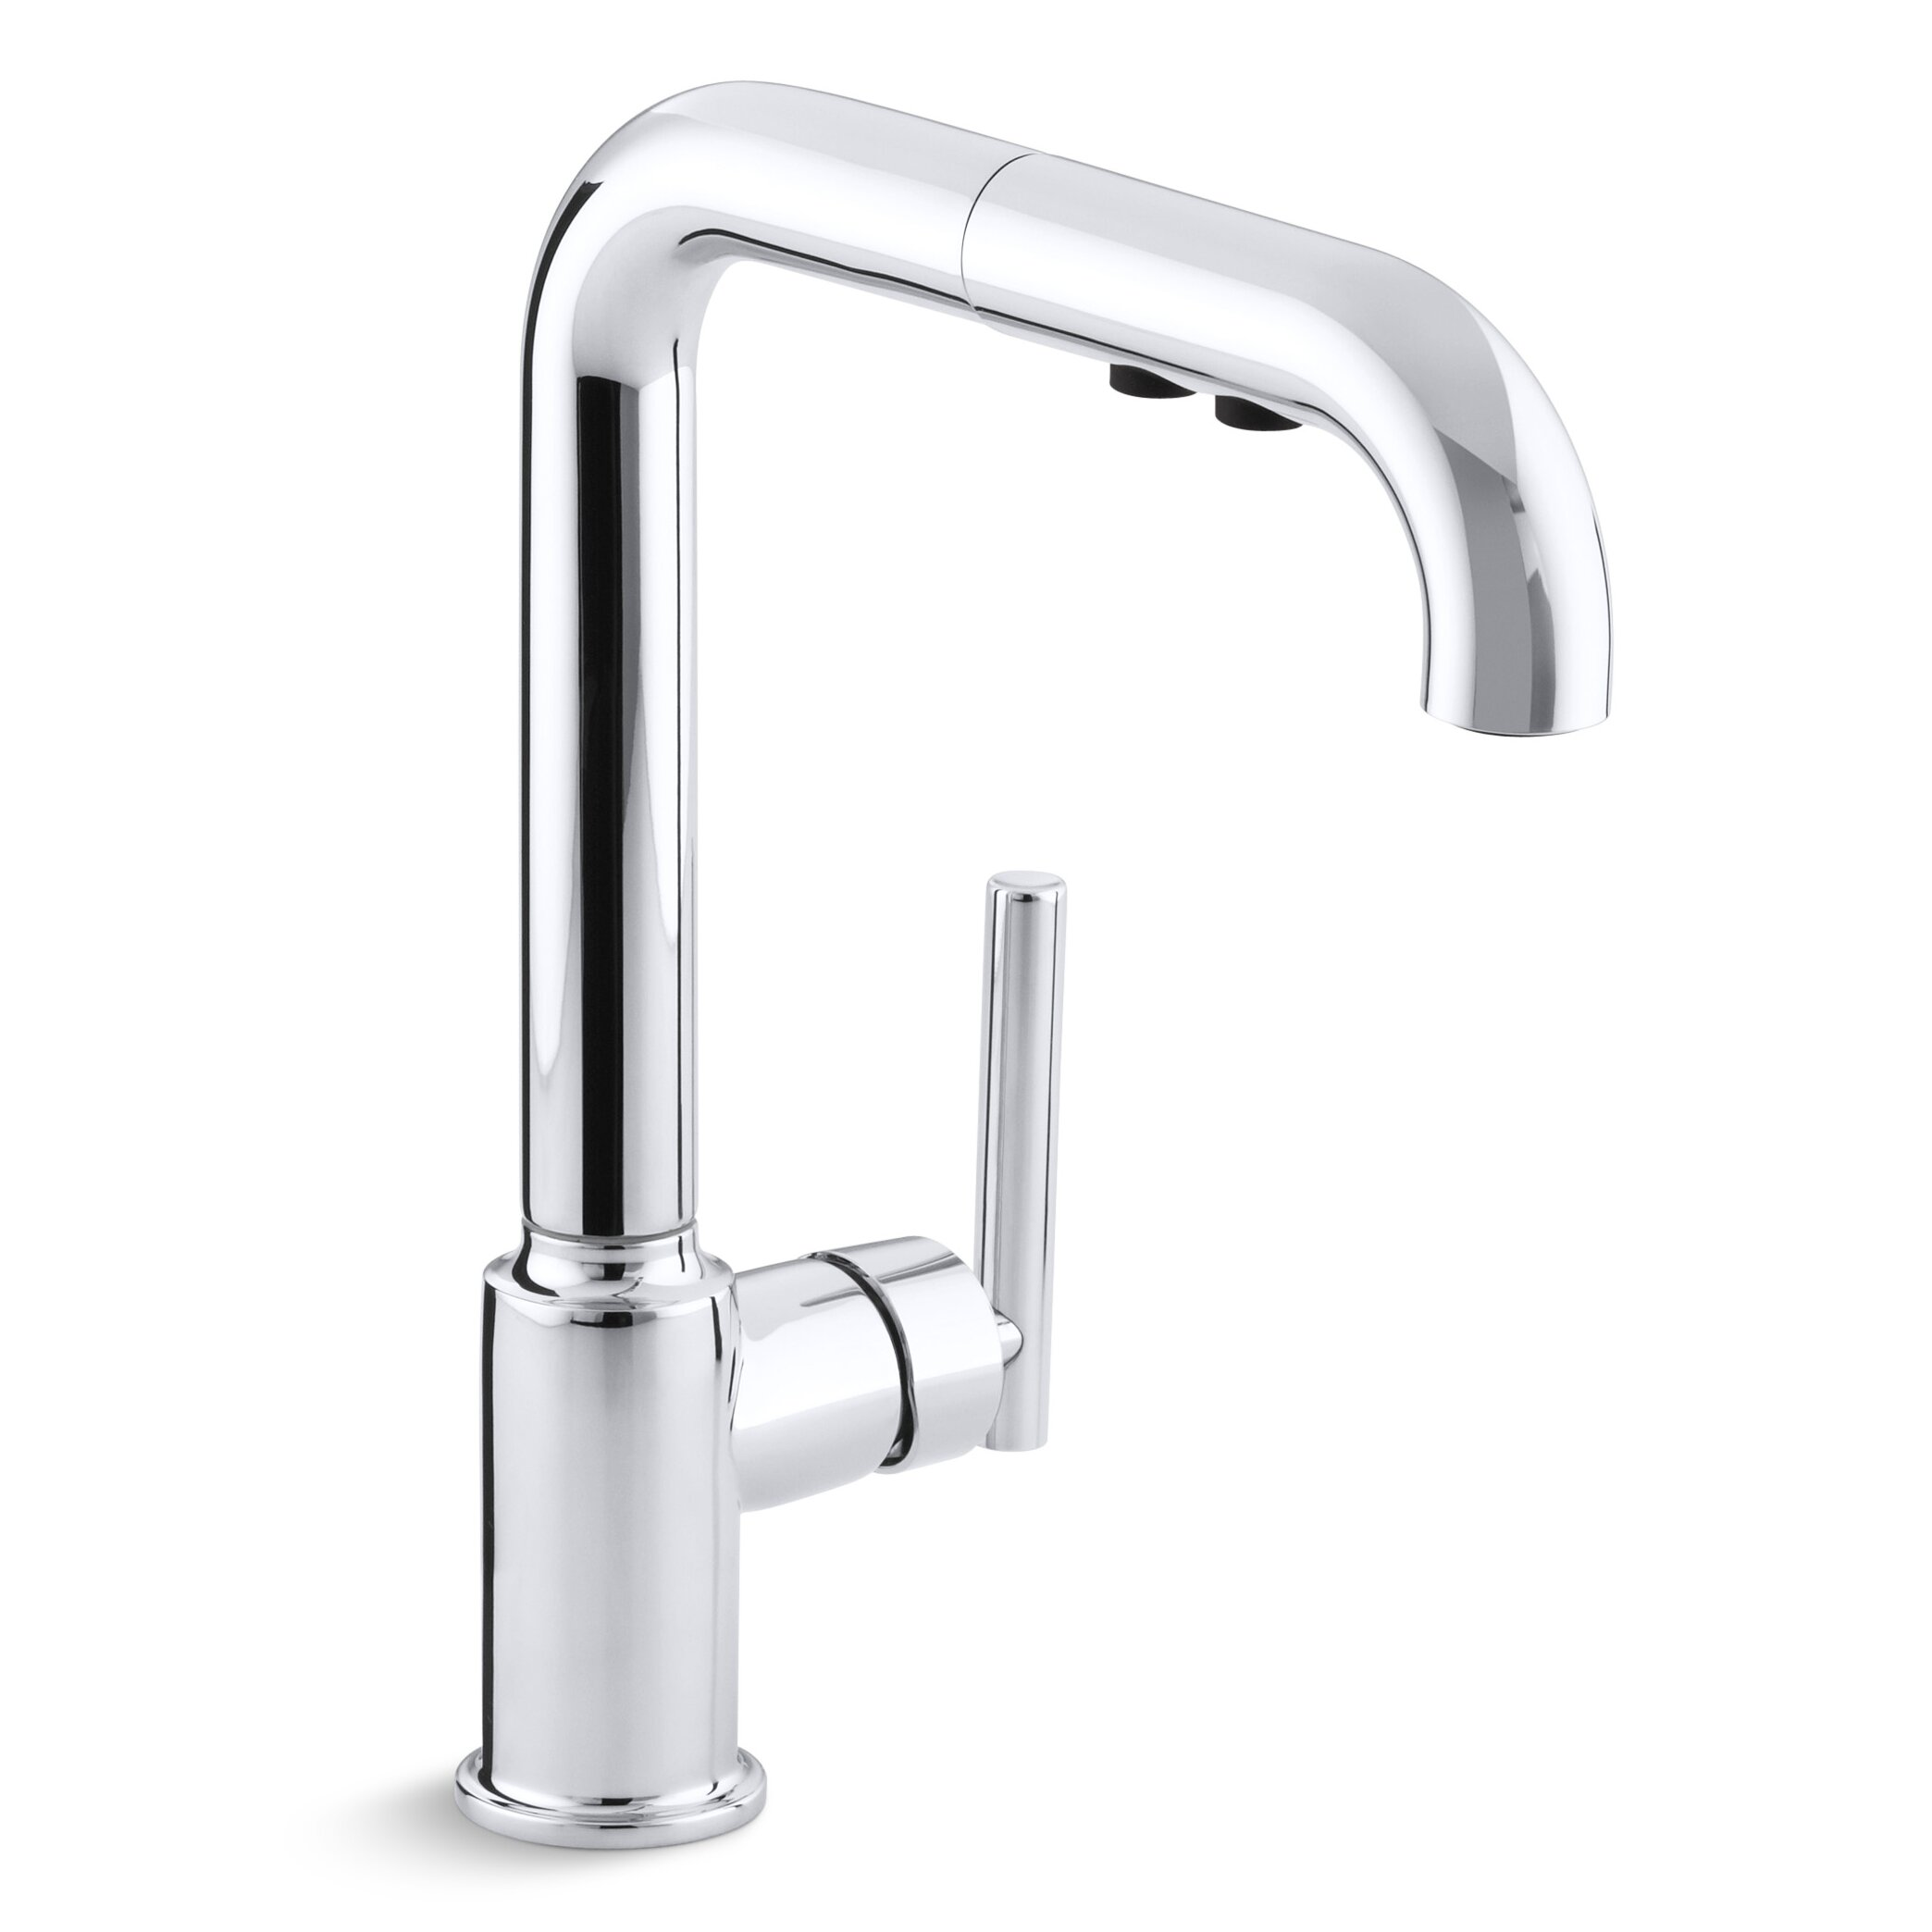 delightful Kohler Kitchen Faucets With Pull Out Spray #6: Kohler Purist Single-Hole Kitchen Sink Faucet with 8u0026quot; Pullout Spout